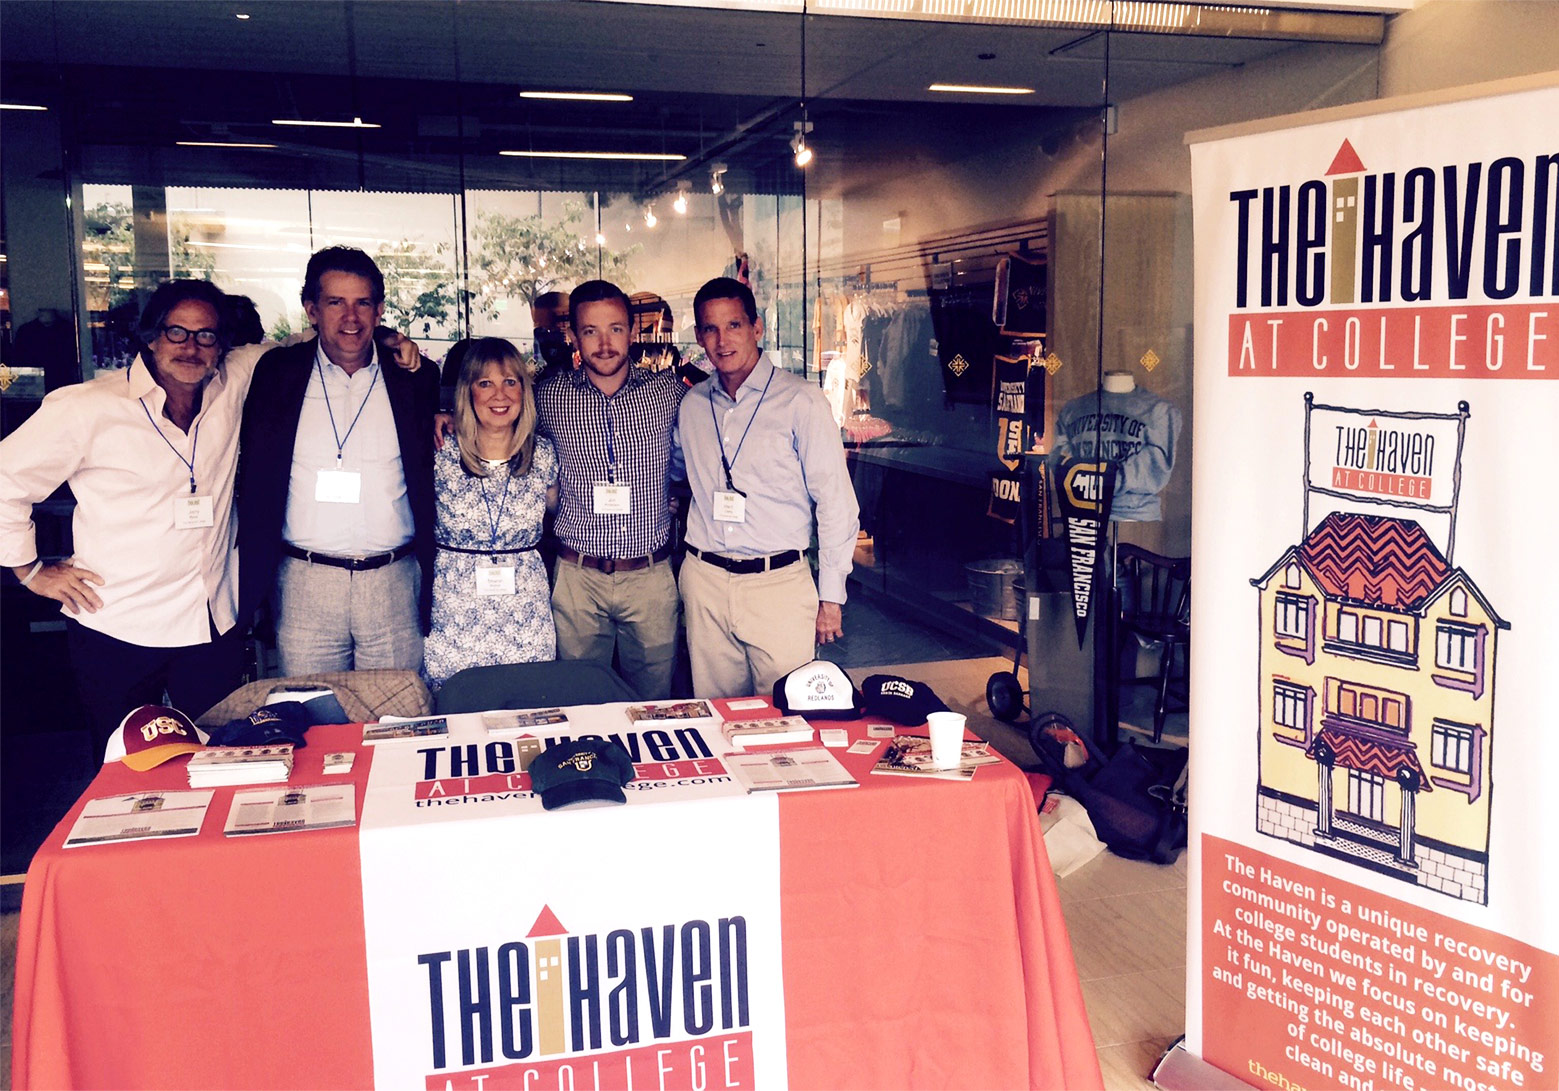 Home | The Haven at College